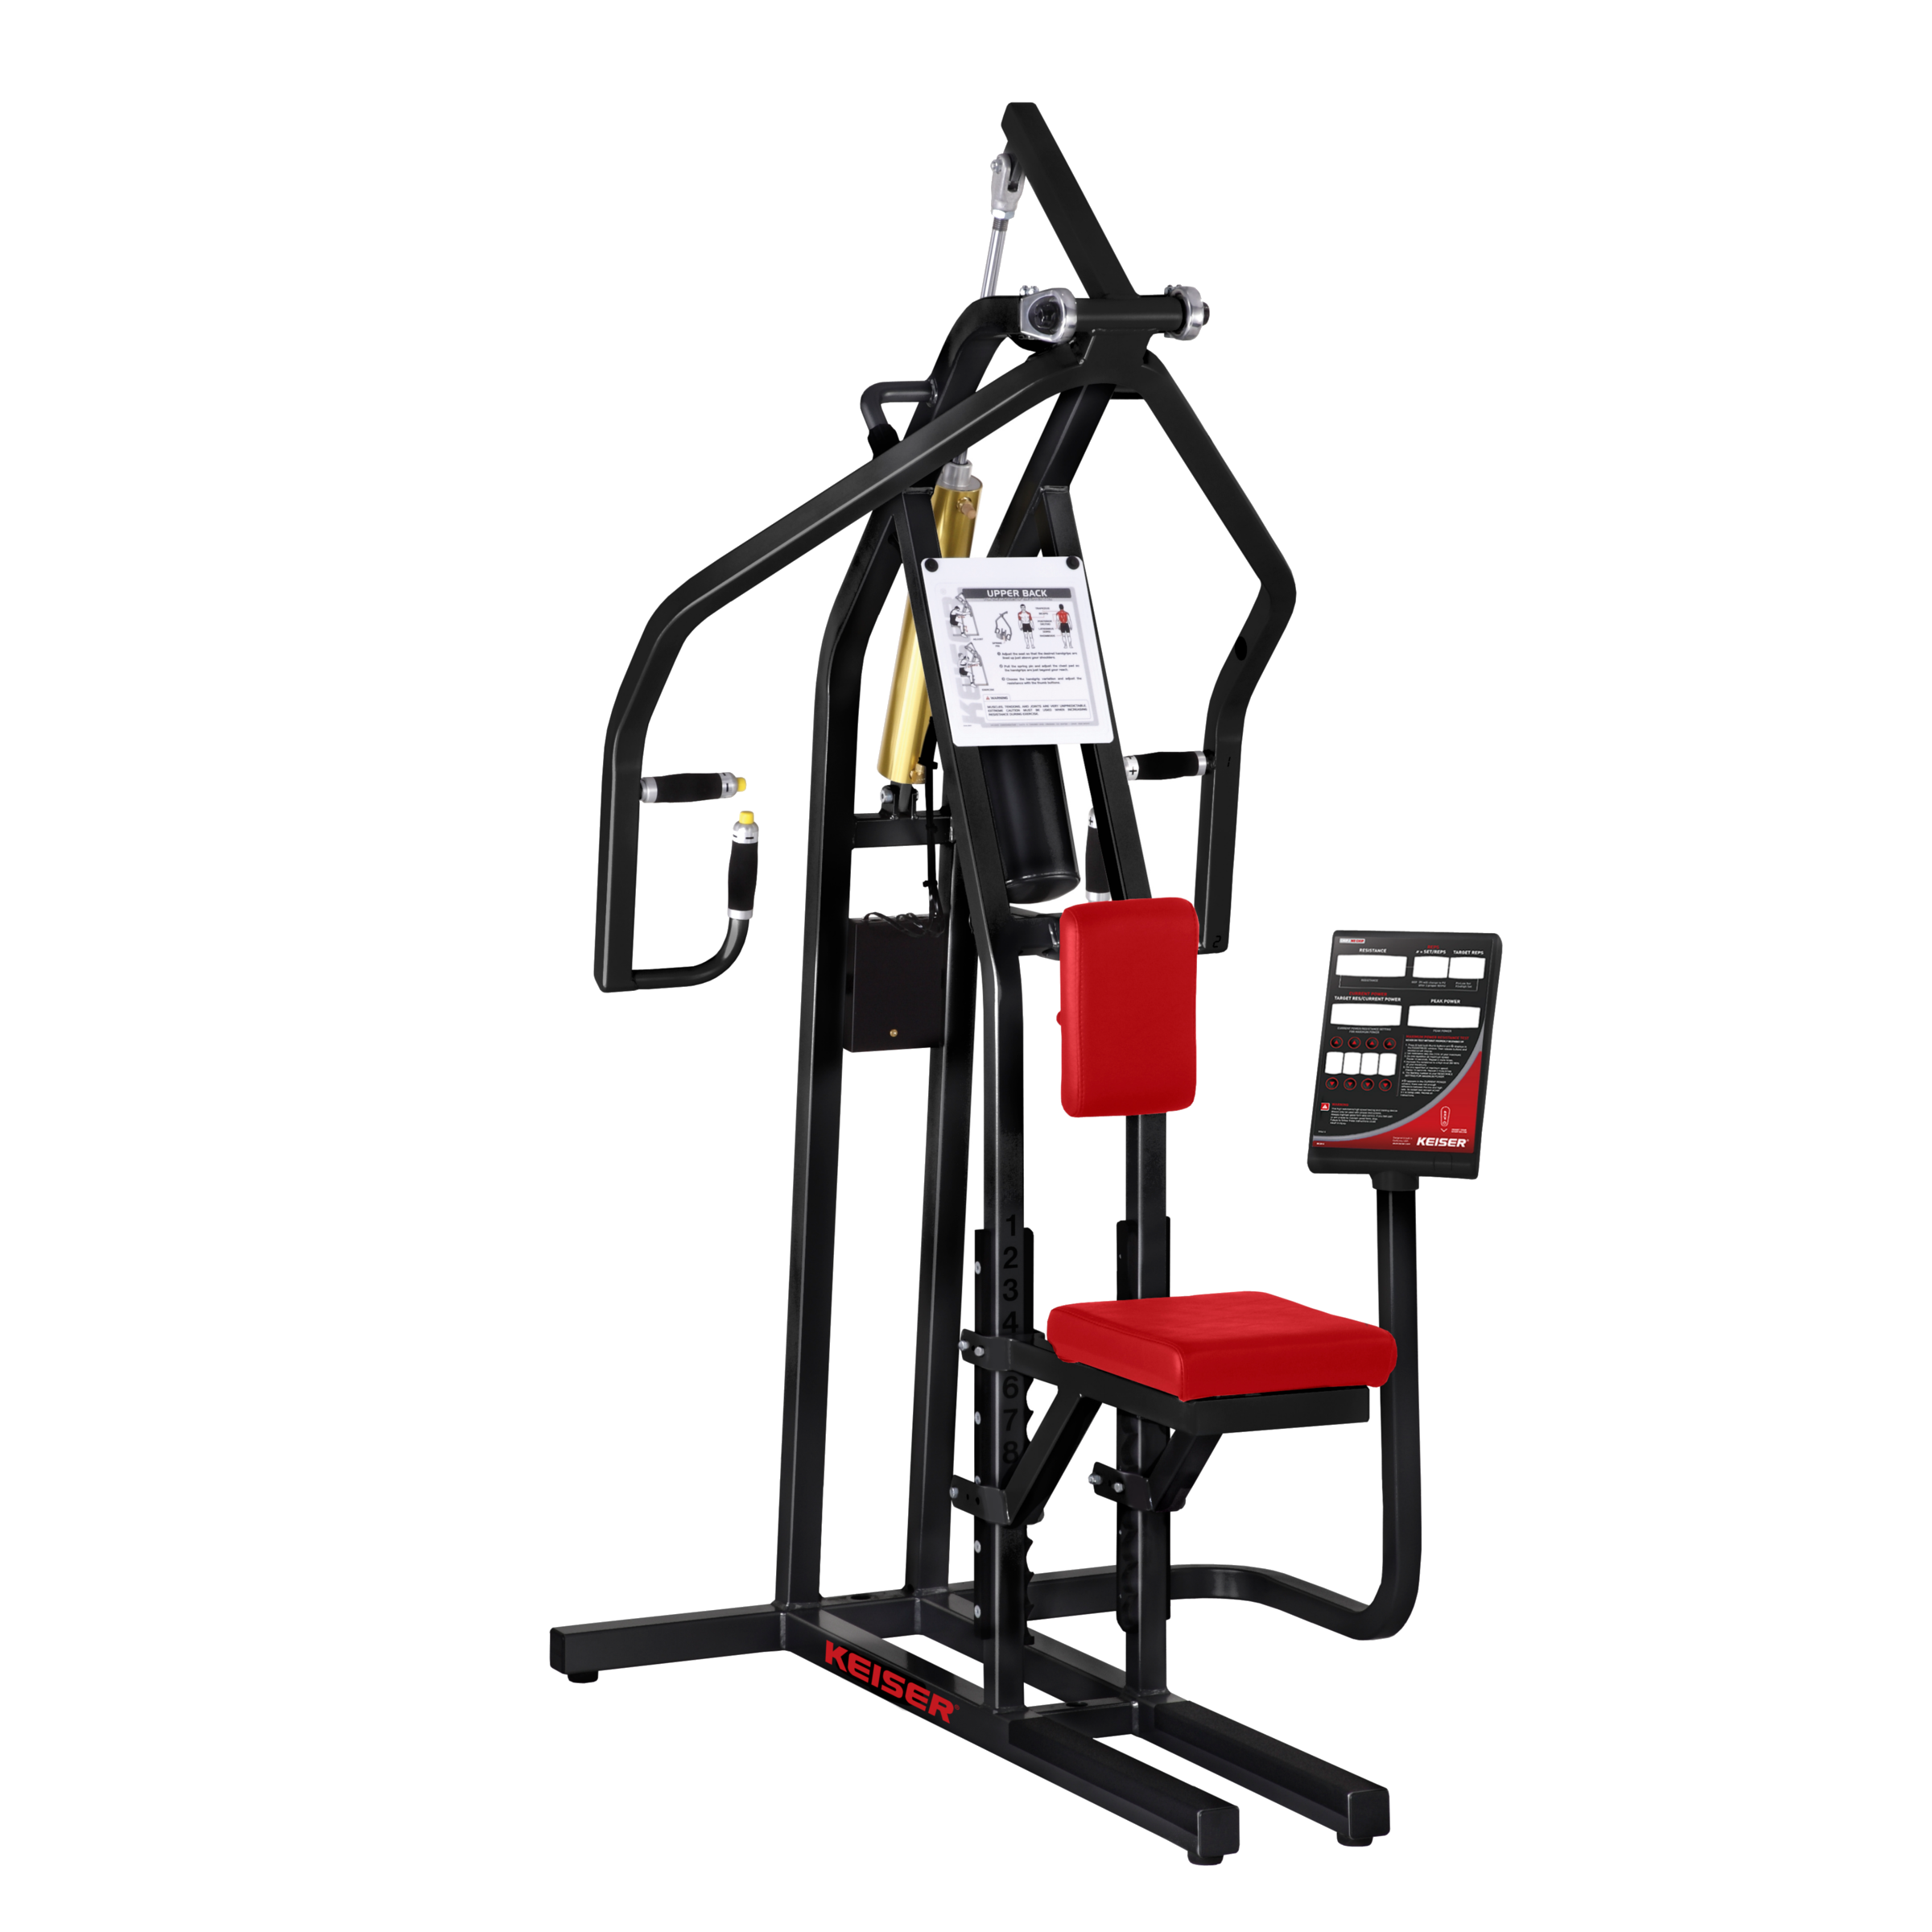 Keiser Air250 Upper Back Strength Machine